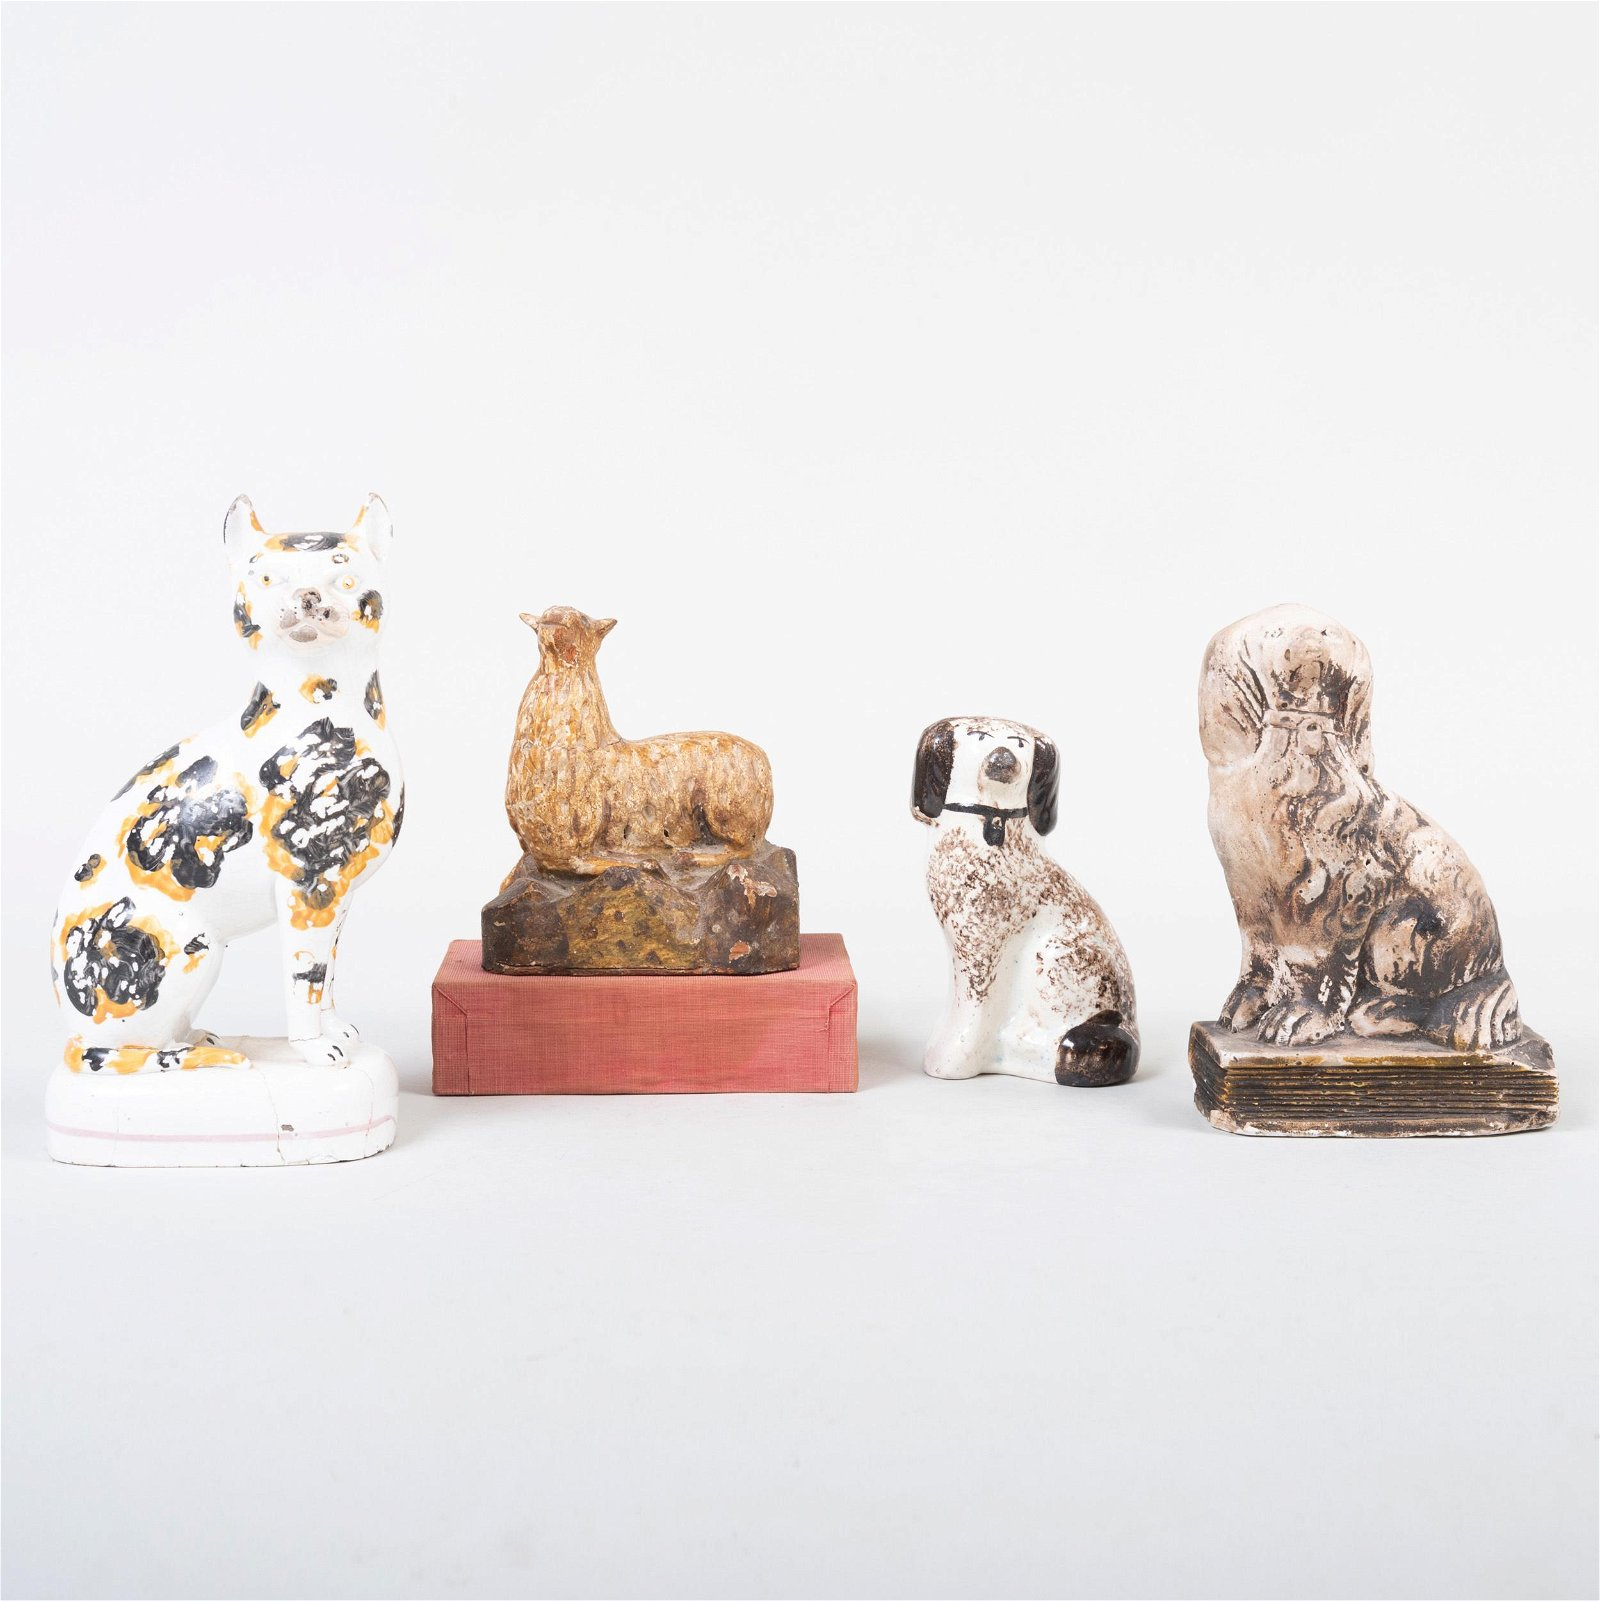 Staffordshire Model of a Spaniel and a Cat, a Chalkware